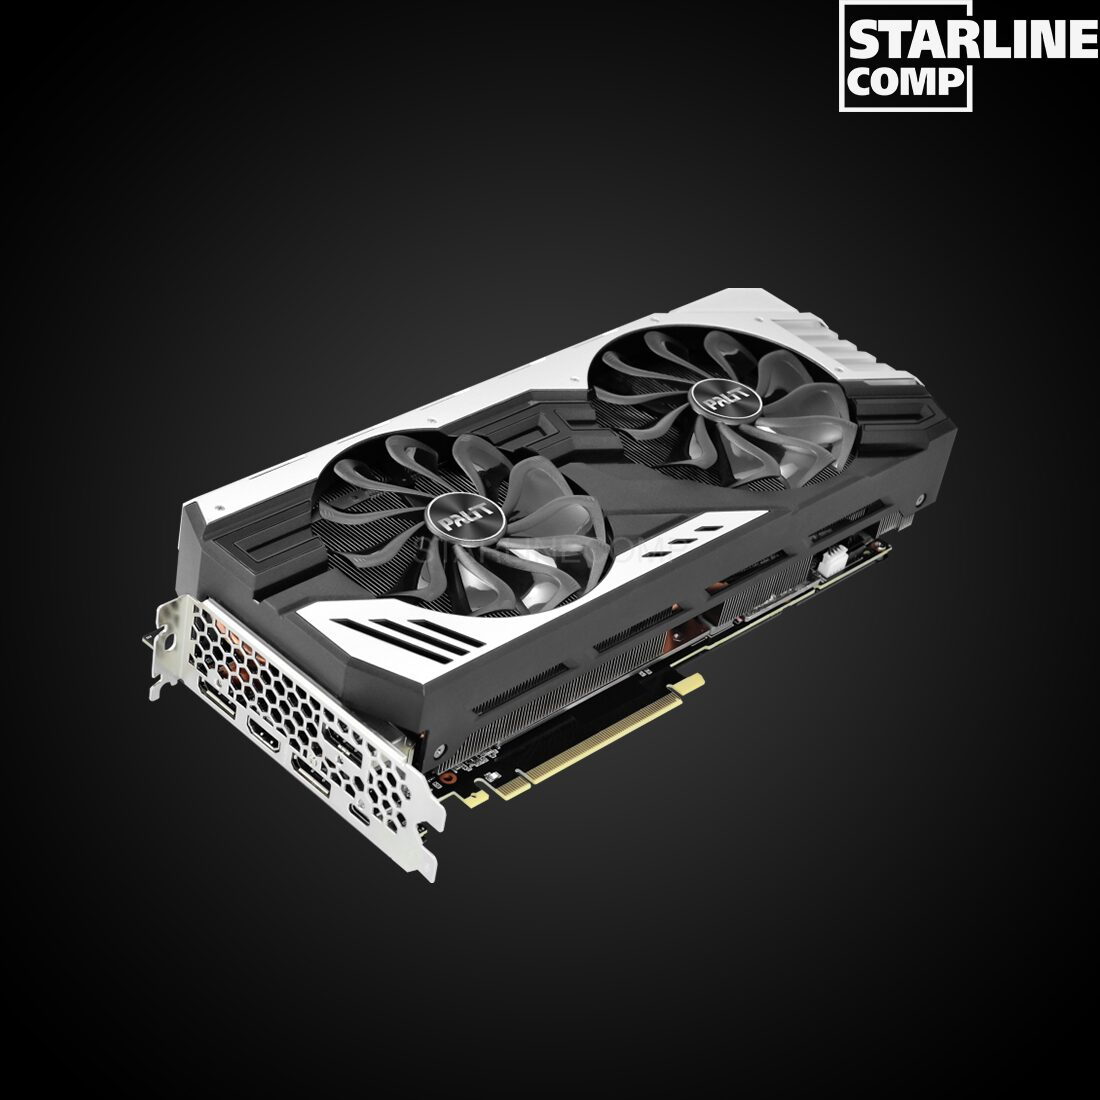 PALIT JETSTREAM GEFORCE RTX 2070 8GB